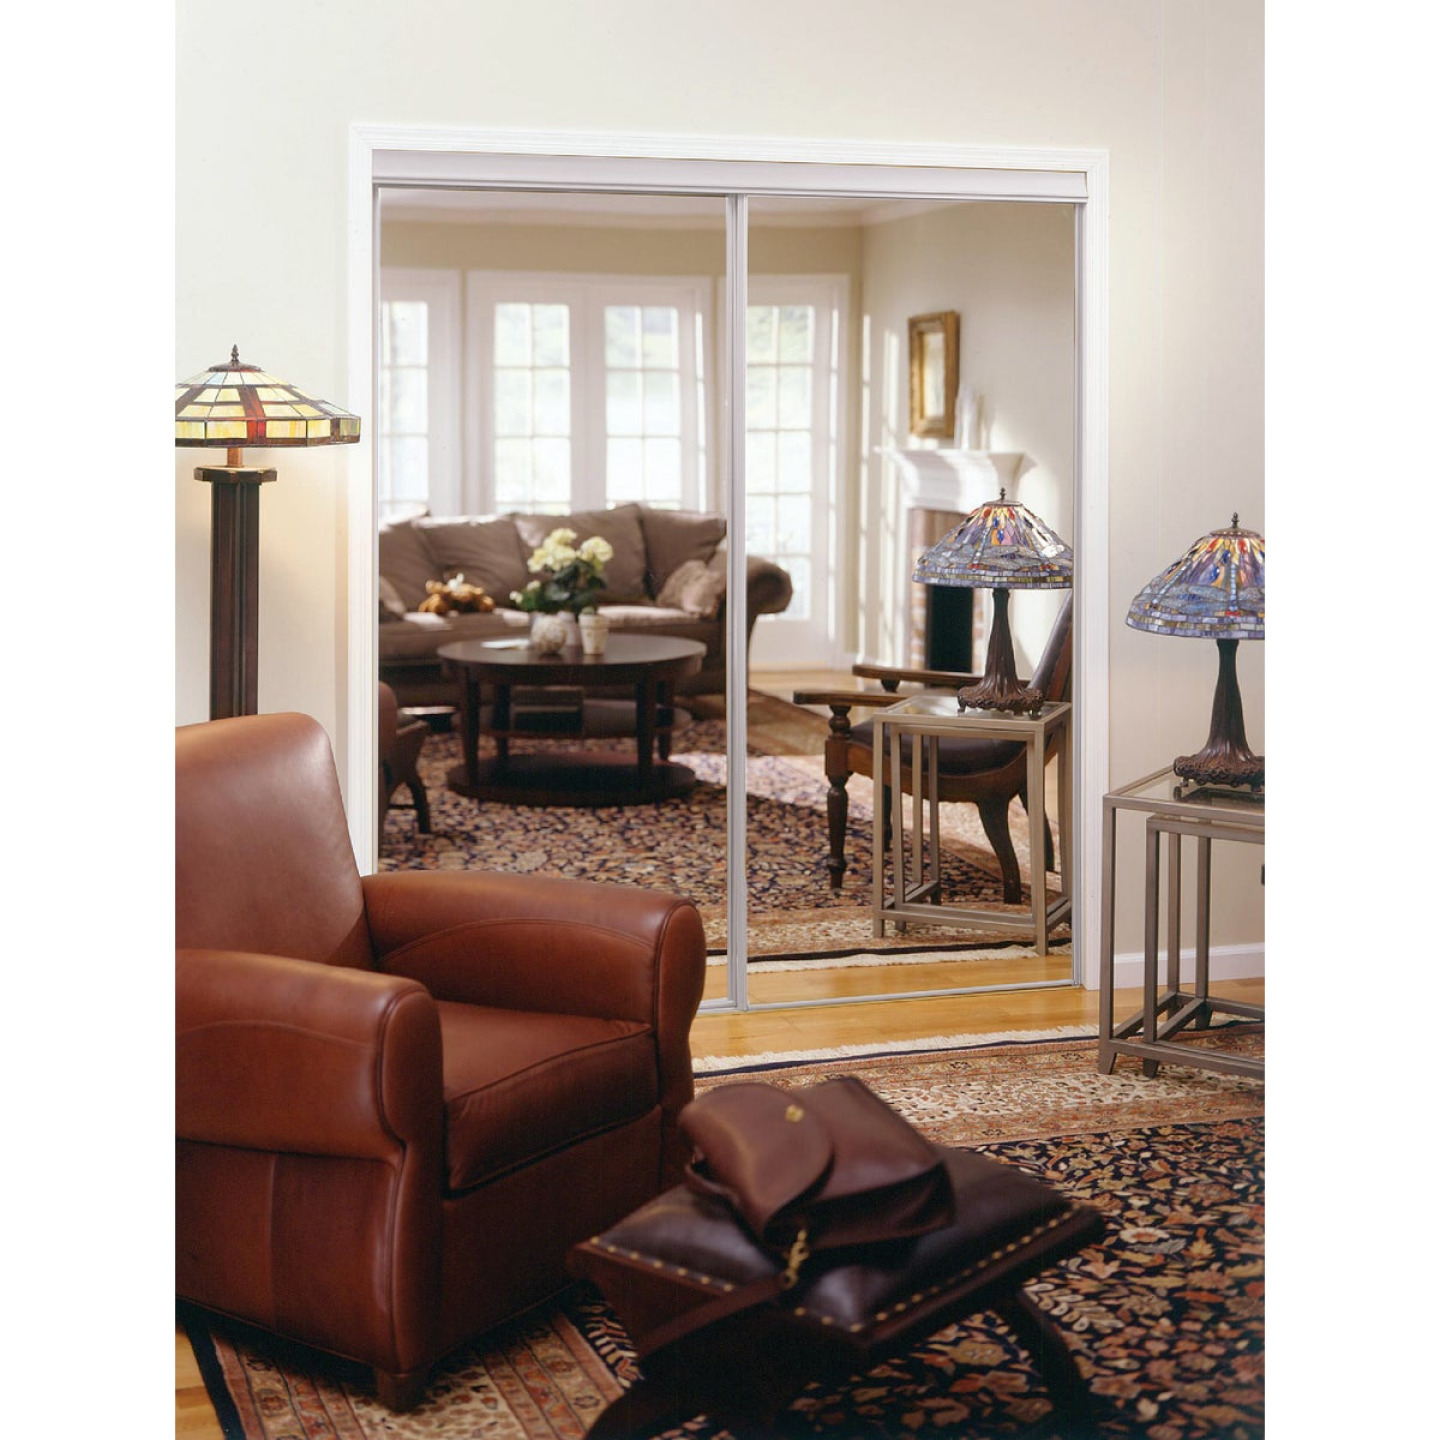 Erias 4050 Series 71 In. W. x 80-1/2 In. H. Bright White Top Hung Mirrored Bypass Door Image 1